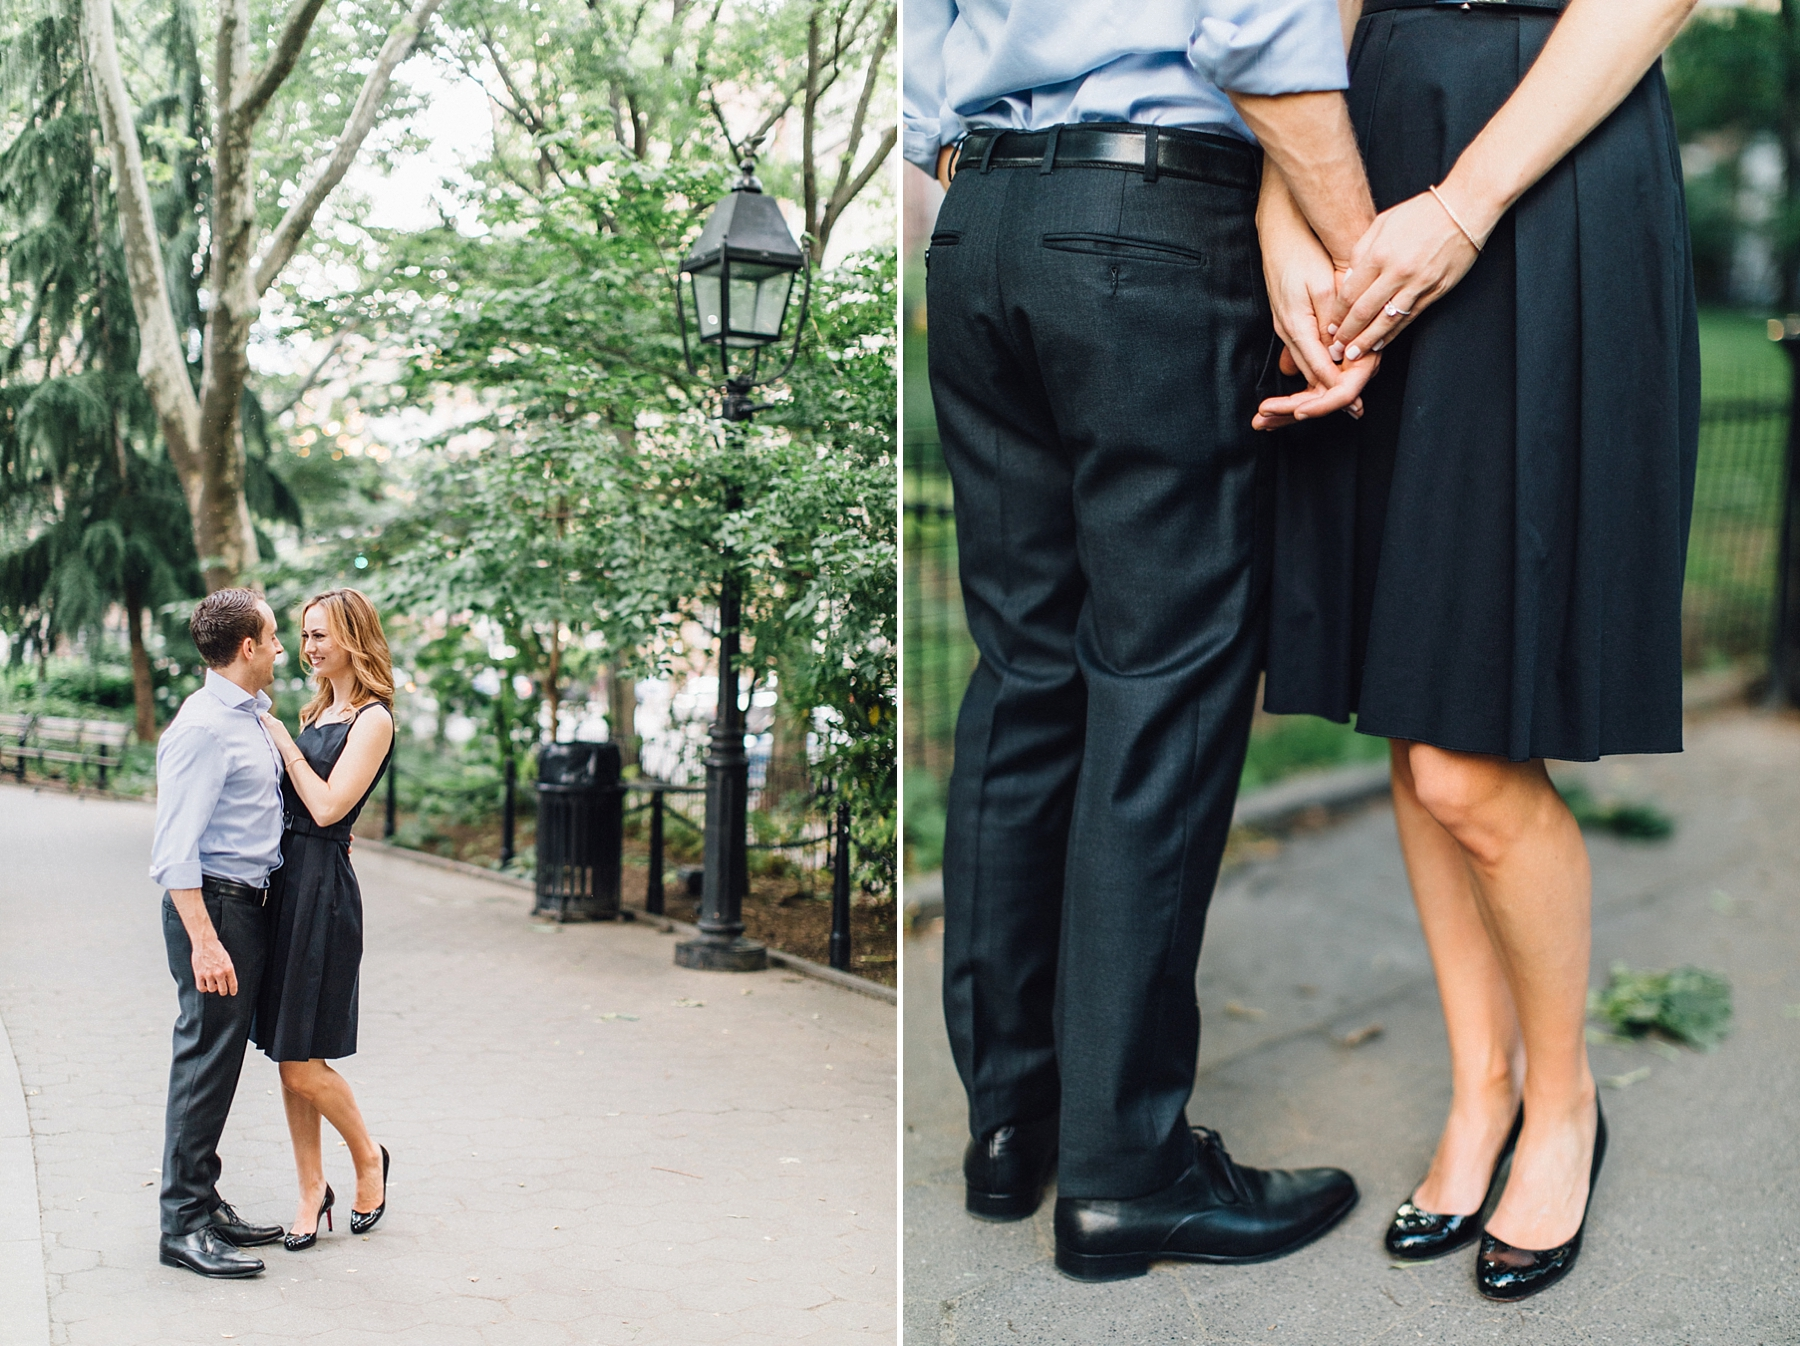 new-york-city-engagement-session-west-village-wedding-photographer_0001.jpg